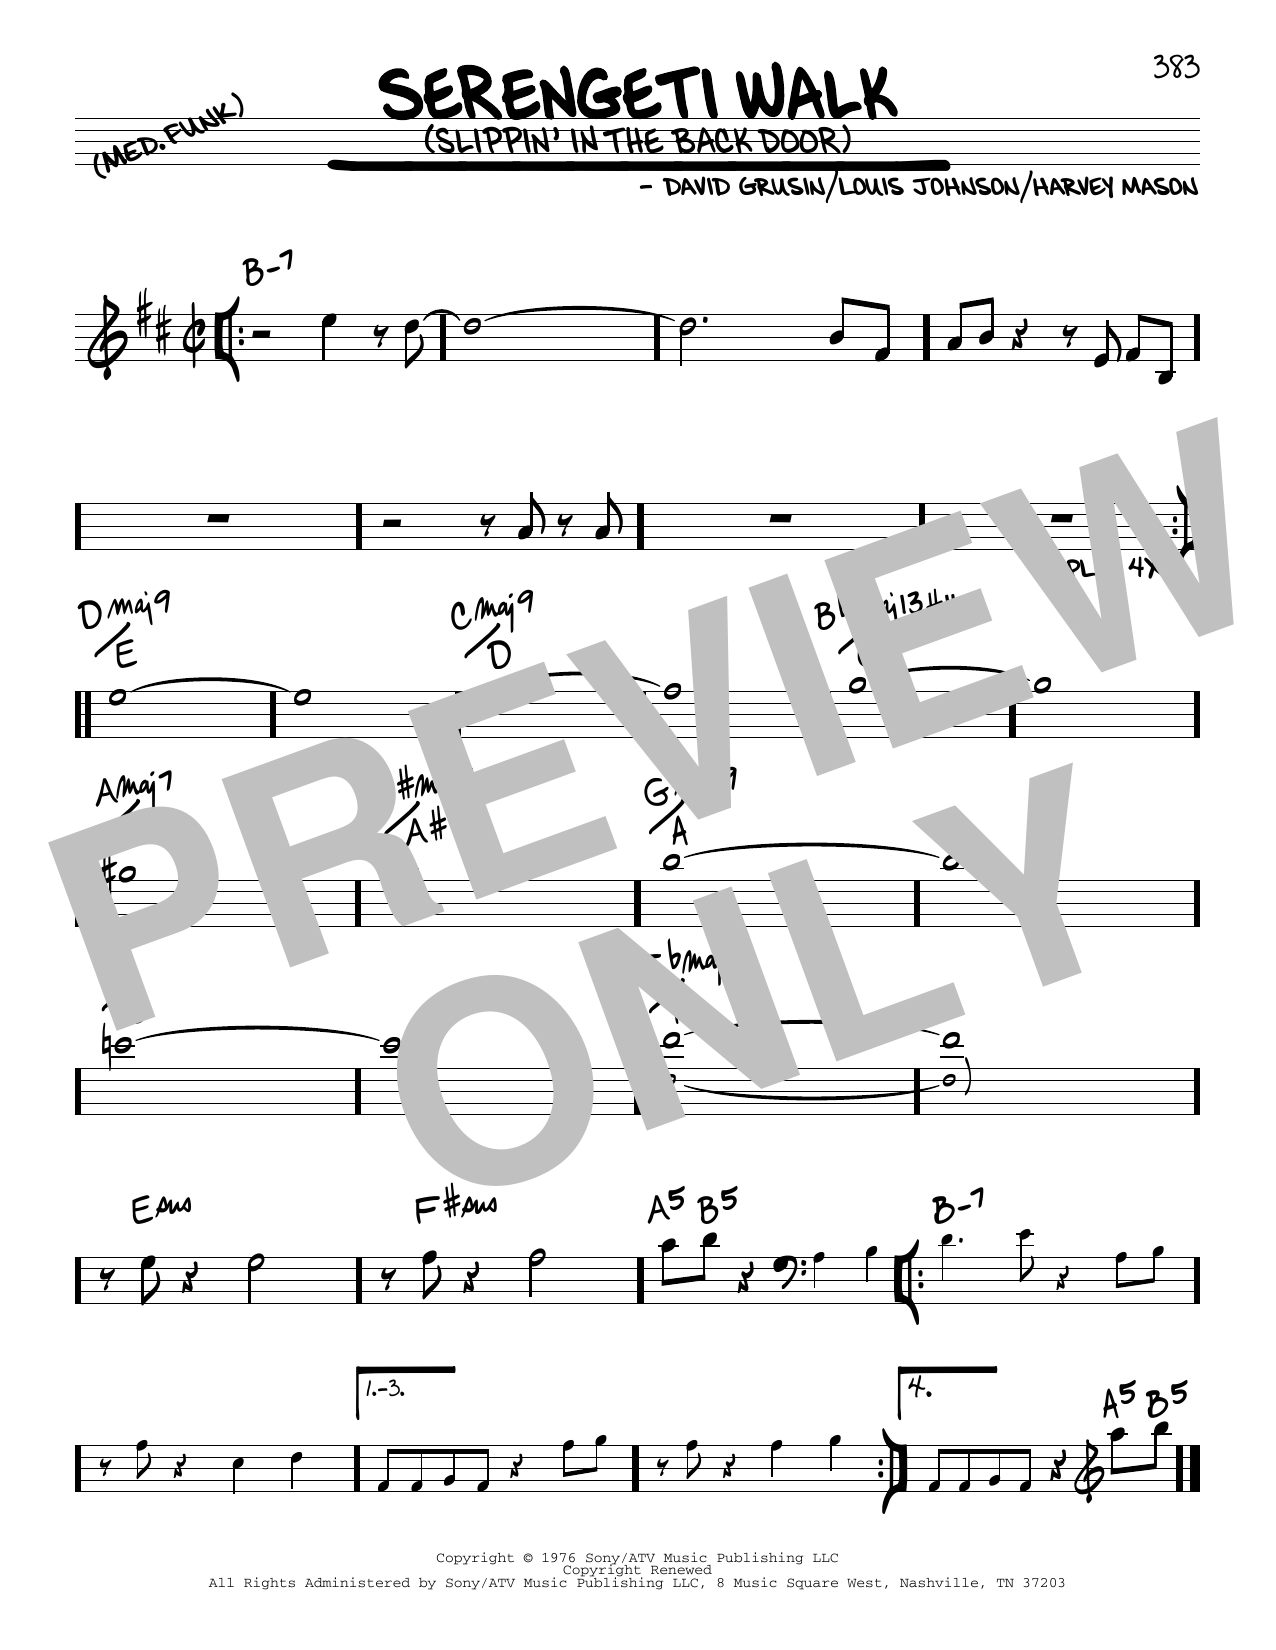 David Grusin Serengeti Walk (Slippin' In The Back Door) sheet music notes and chords. Download Printable PDF.